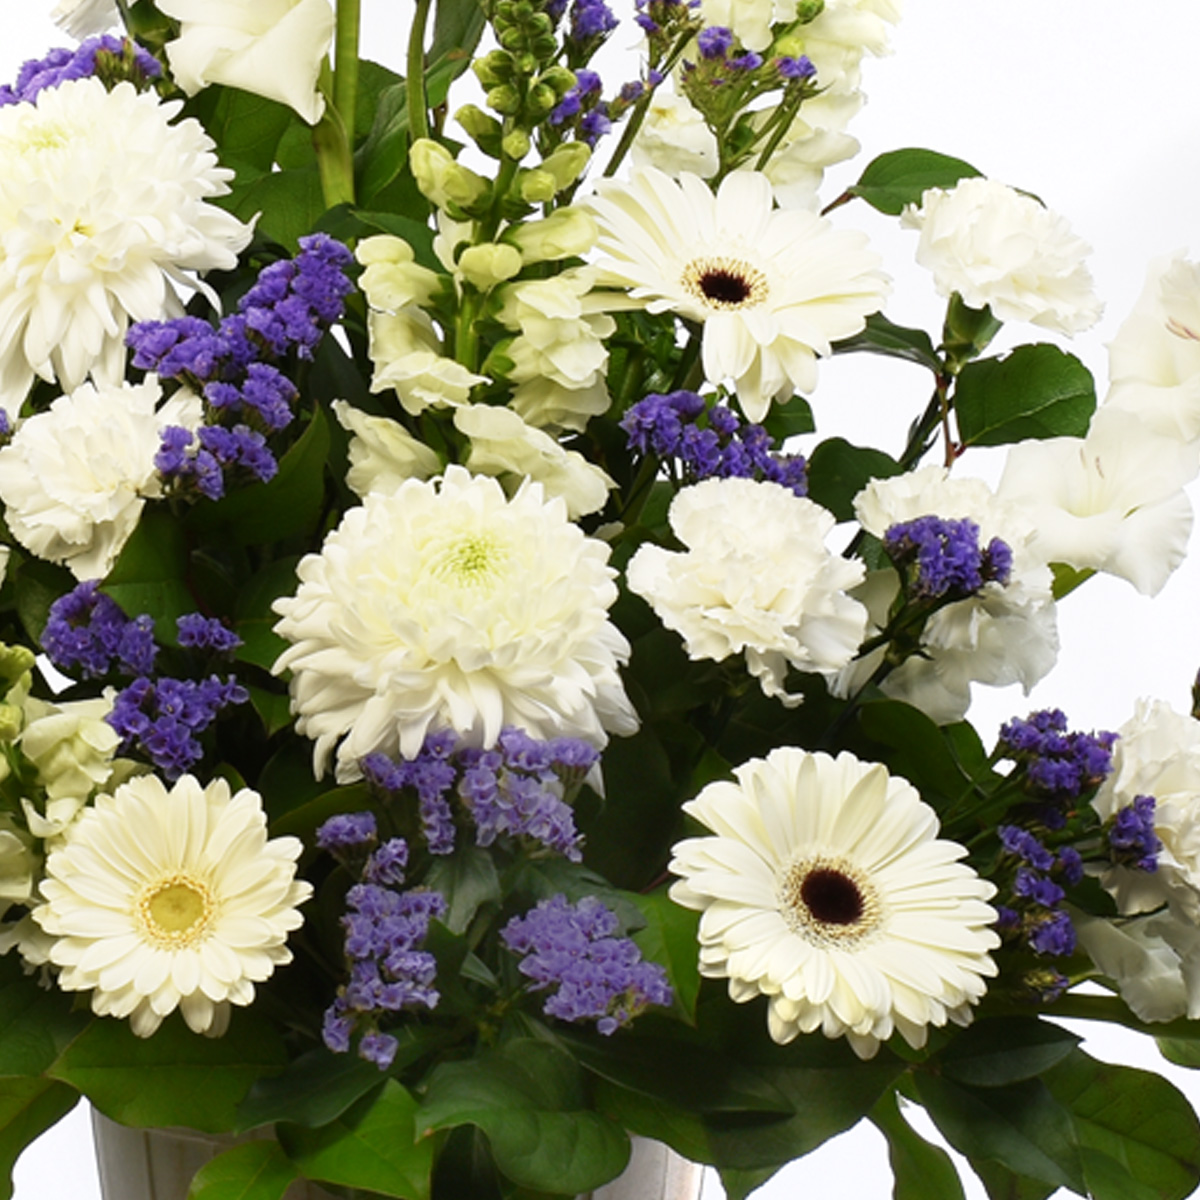 Sympathy flower design for home with white flowers like gladiolas